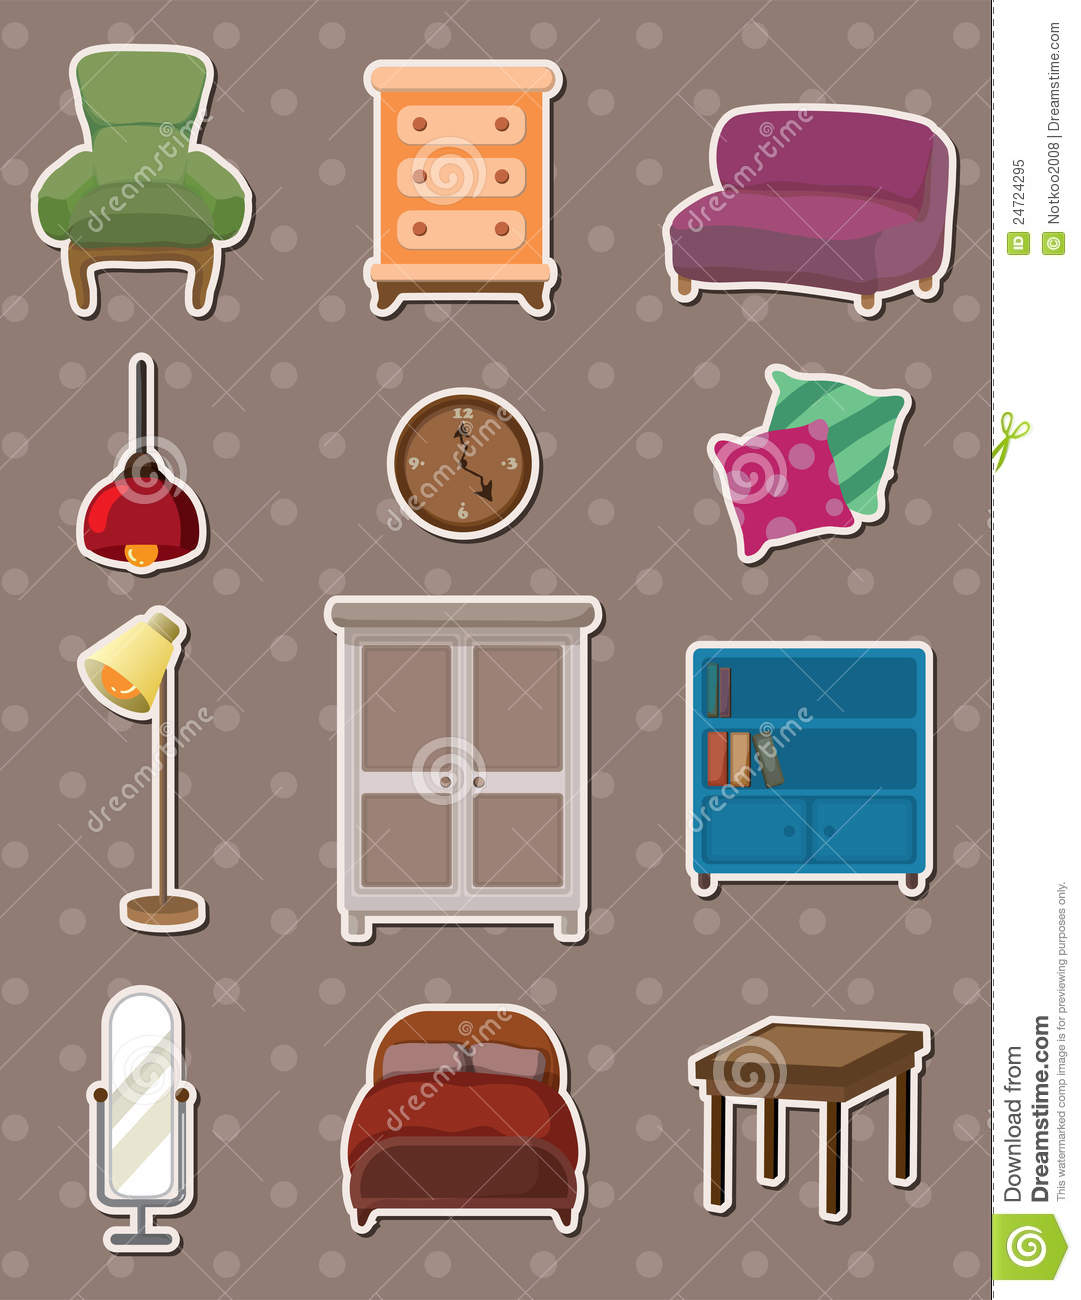 Cartoon Furniture Stickers Royalty Free Stock Photo